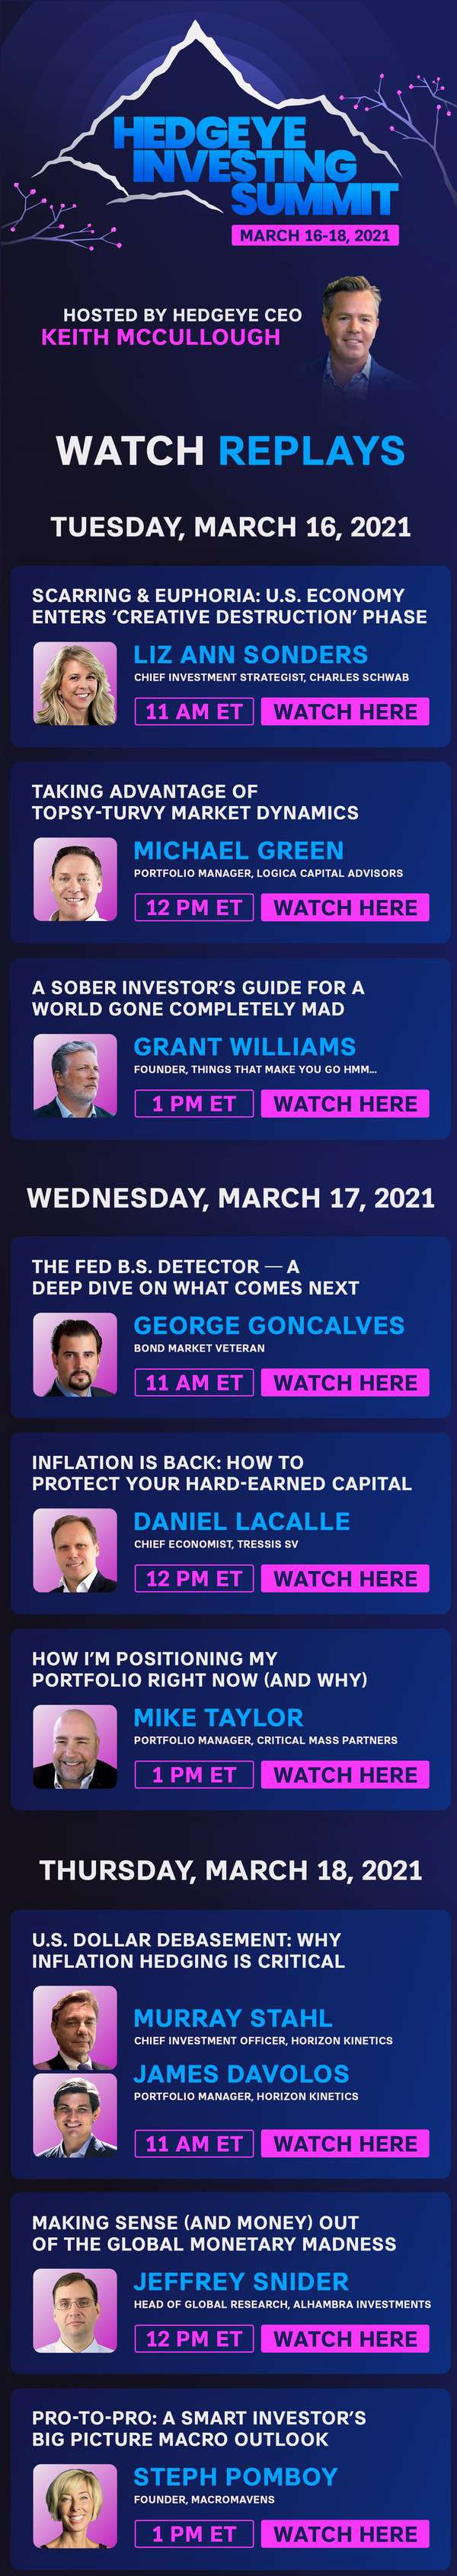 REPLAYS | Hedgeye Investing Summit (A HedgeyeTV Special Event) - REPLAYS1